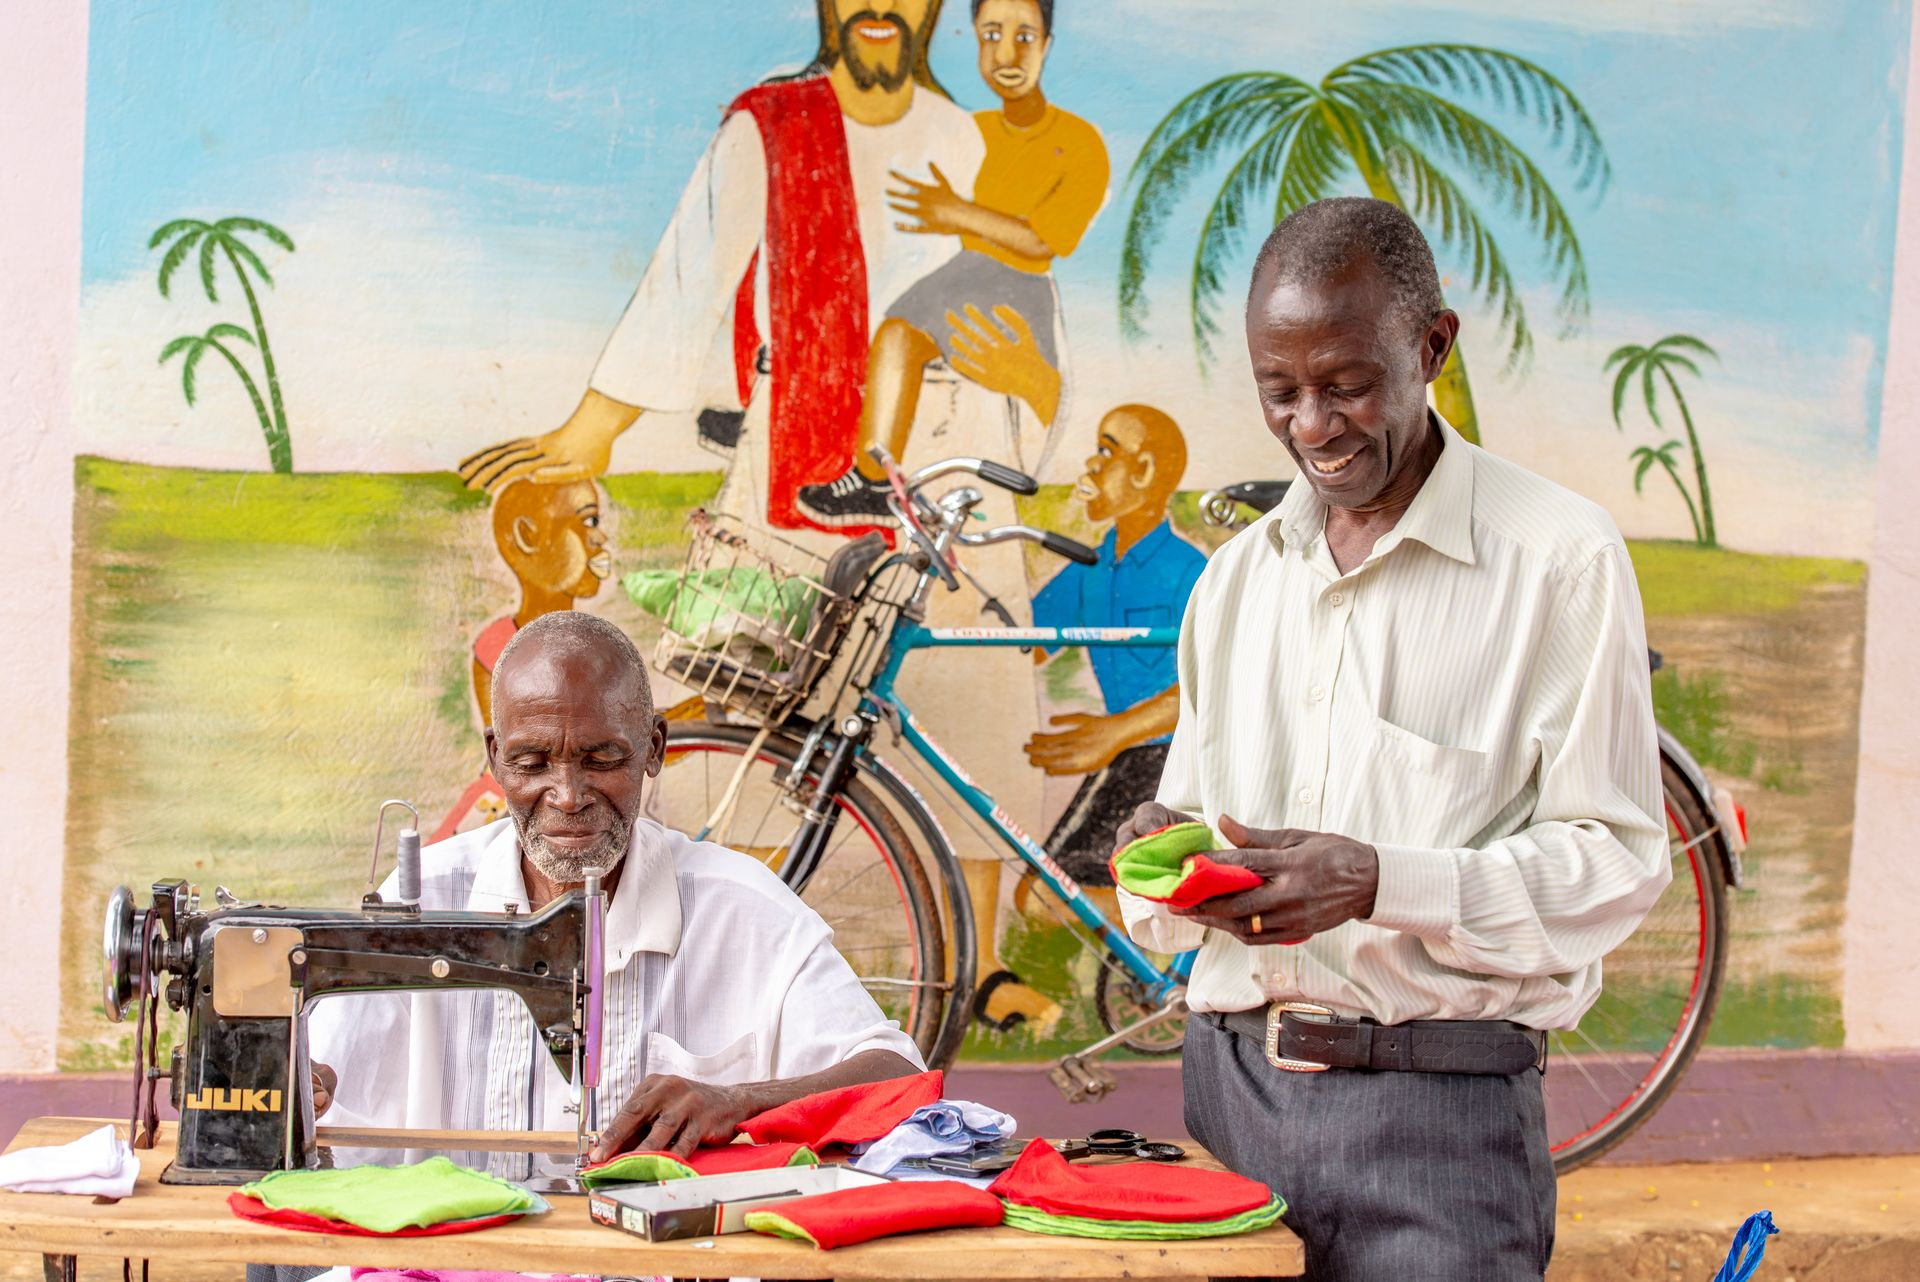 Two men at a table sewing sanitary pads.